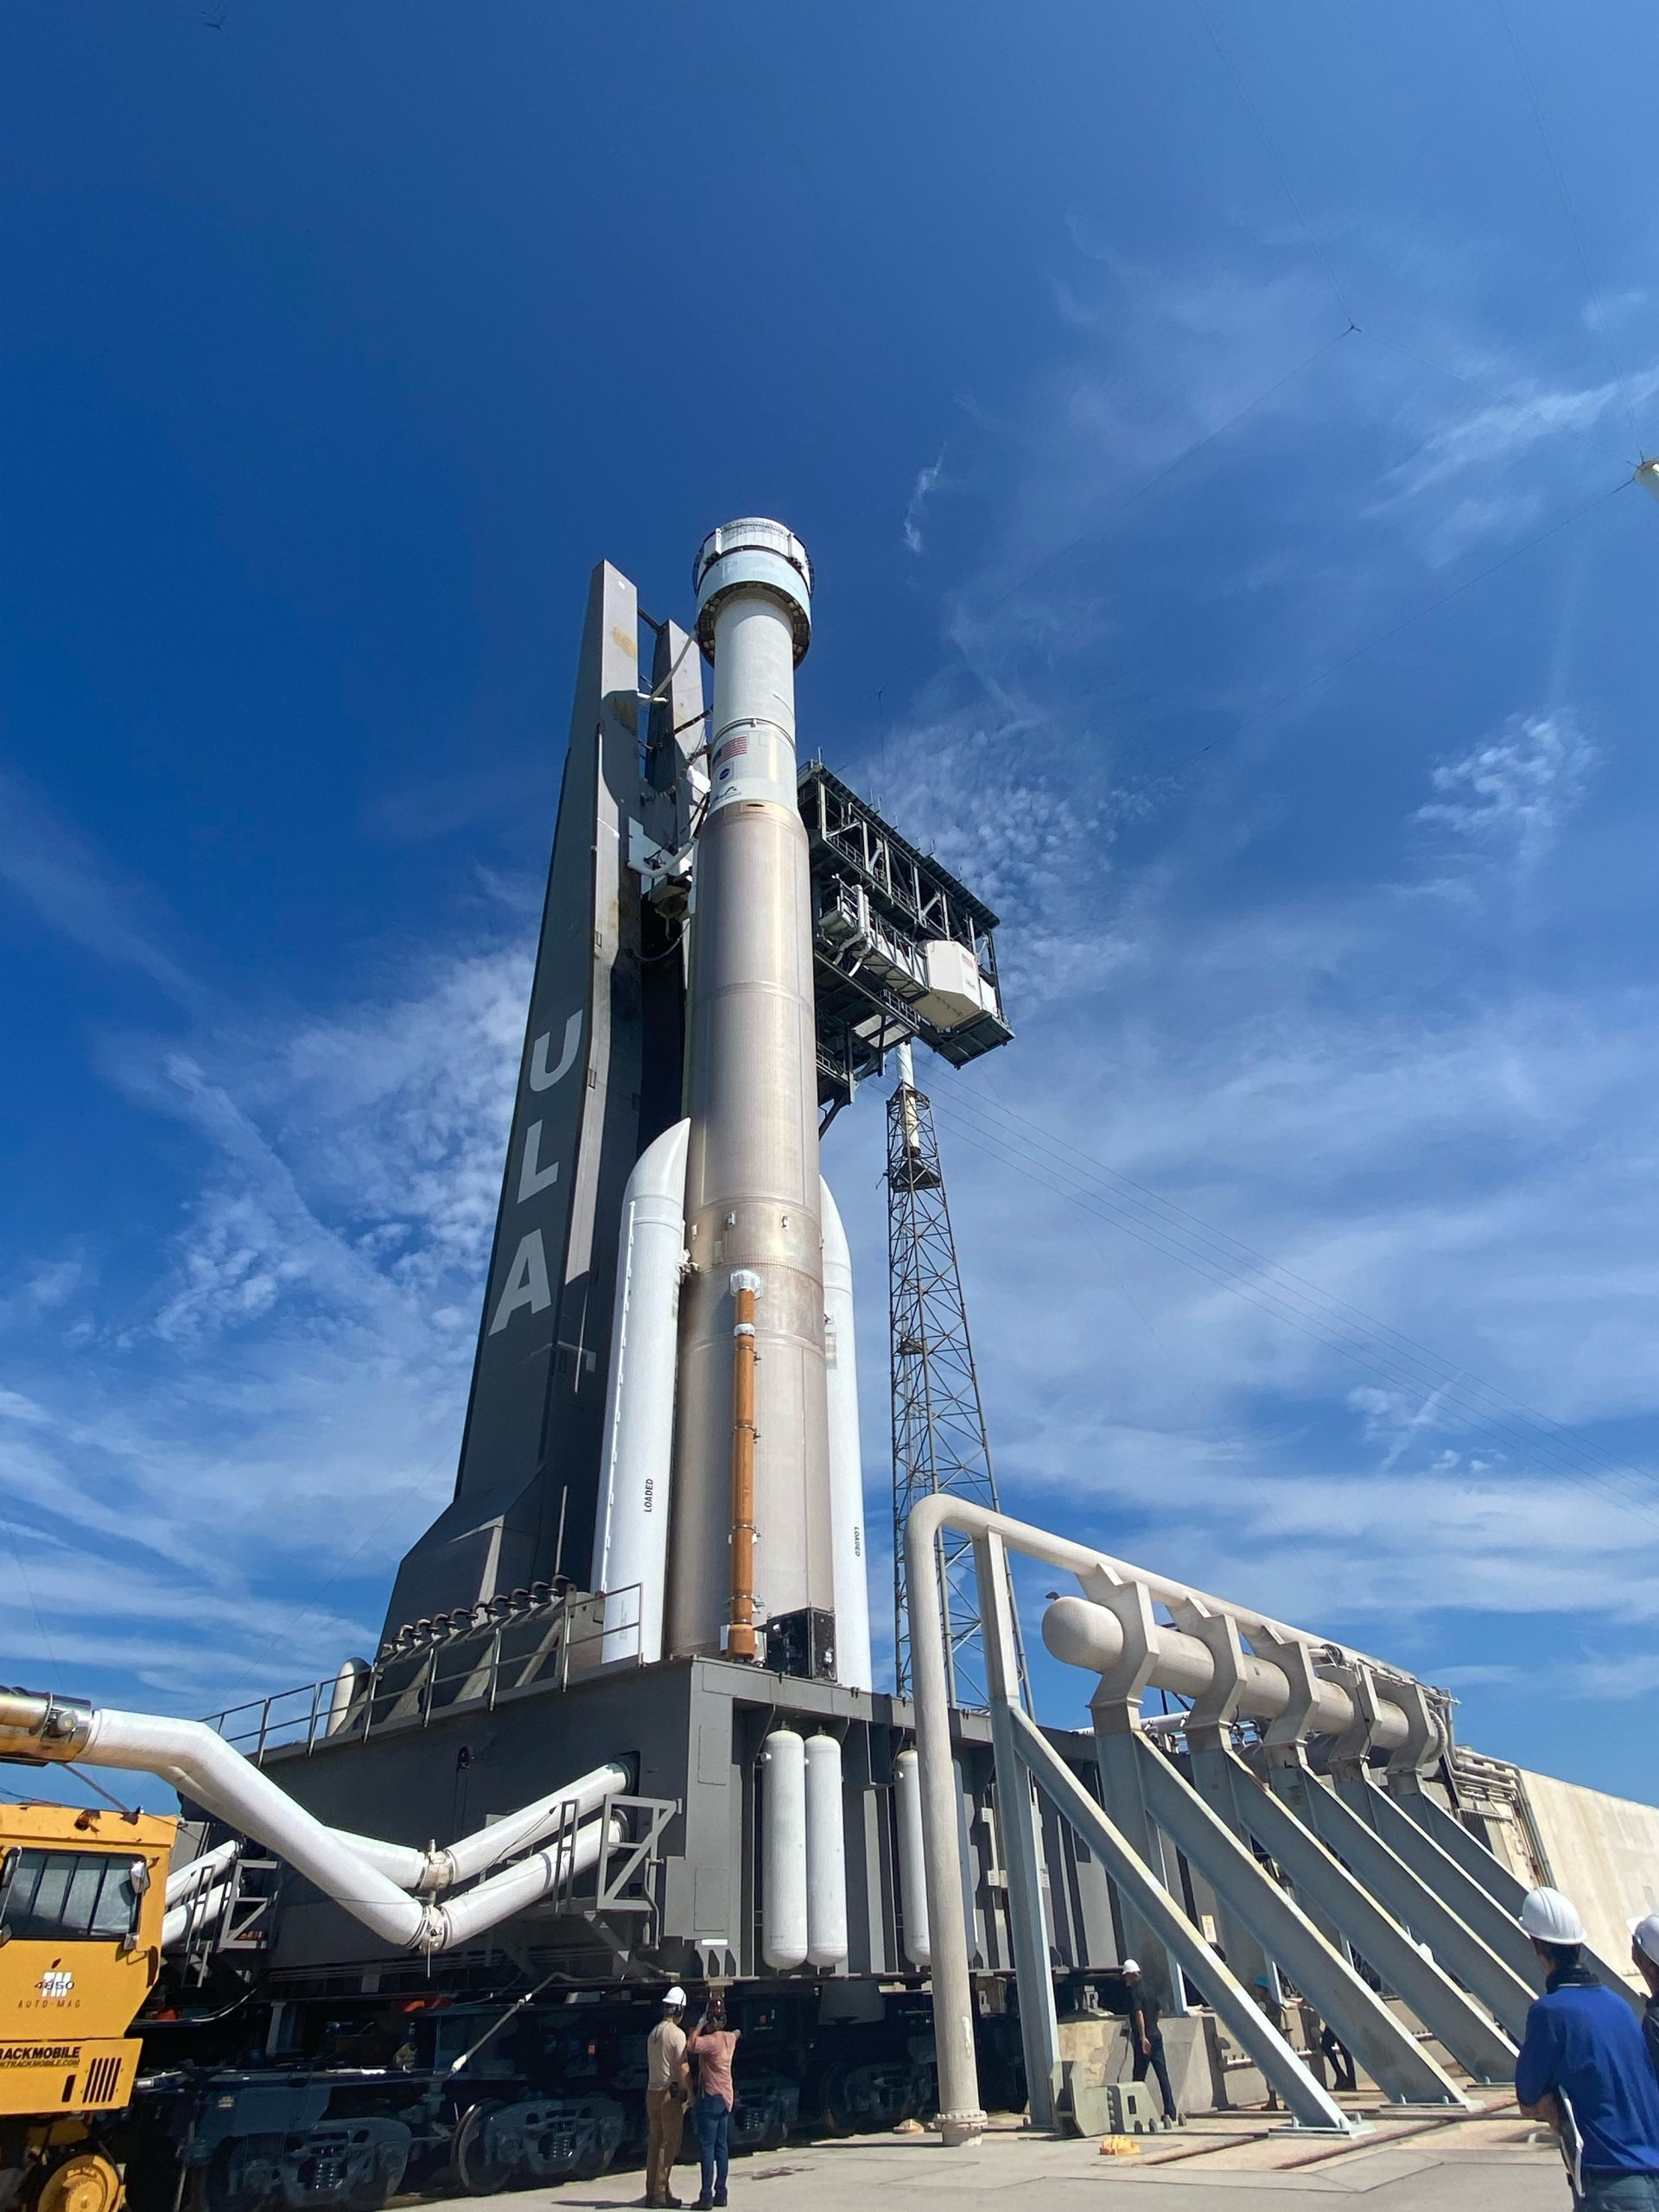 On July 29, 2021, Boeing's CST-100 Starliner spacecraft and the United Launch Alliance Atlas V rocket rolled out of the Vertical Integration Facility to the launch pad at Space Launch Complex-41 on Cape Canaveral Space Force Station in Florida. Starliner will launch on the Atlas V for Boeing's second uncrewed Orbital Flight Test (OFT-2) for NASA's Commercial Crew Program. OFT-2 is an important uncrewed mission designed to test the end-to-end capabilities of the new system for NASA's Commercial Crew Program.